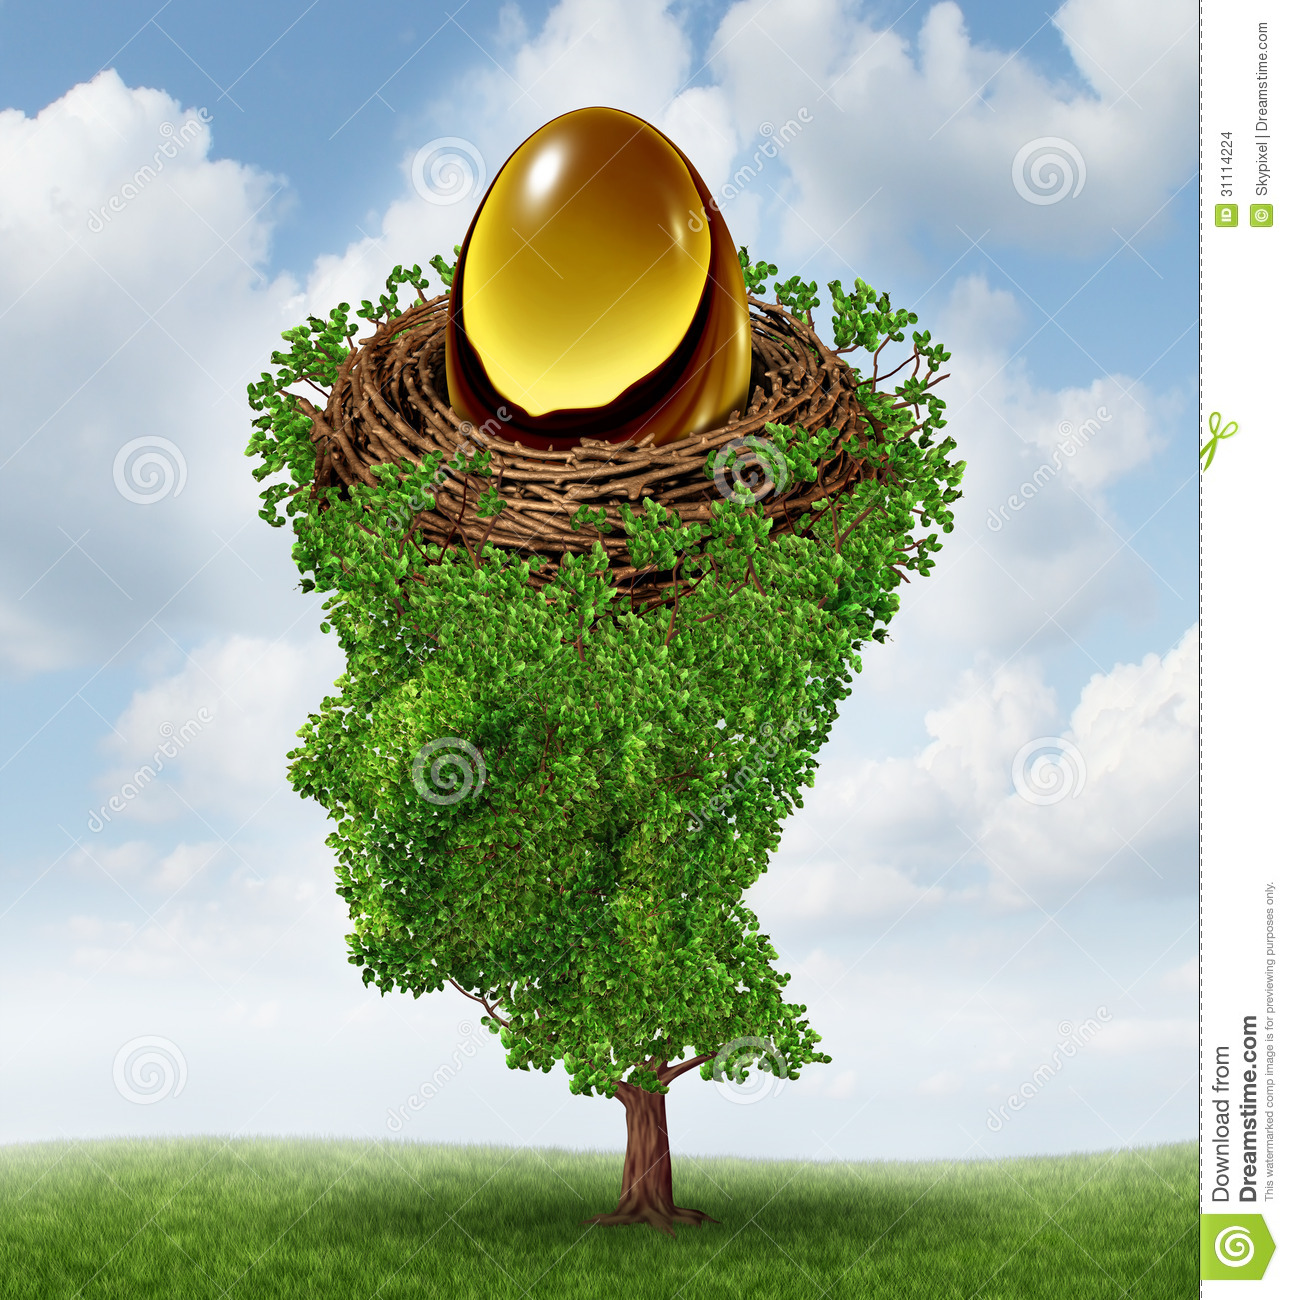 Finance Tree: Managing Your Nest Egg Stock Images